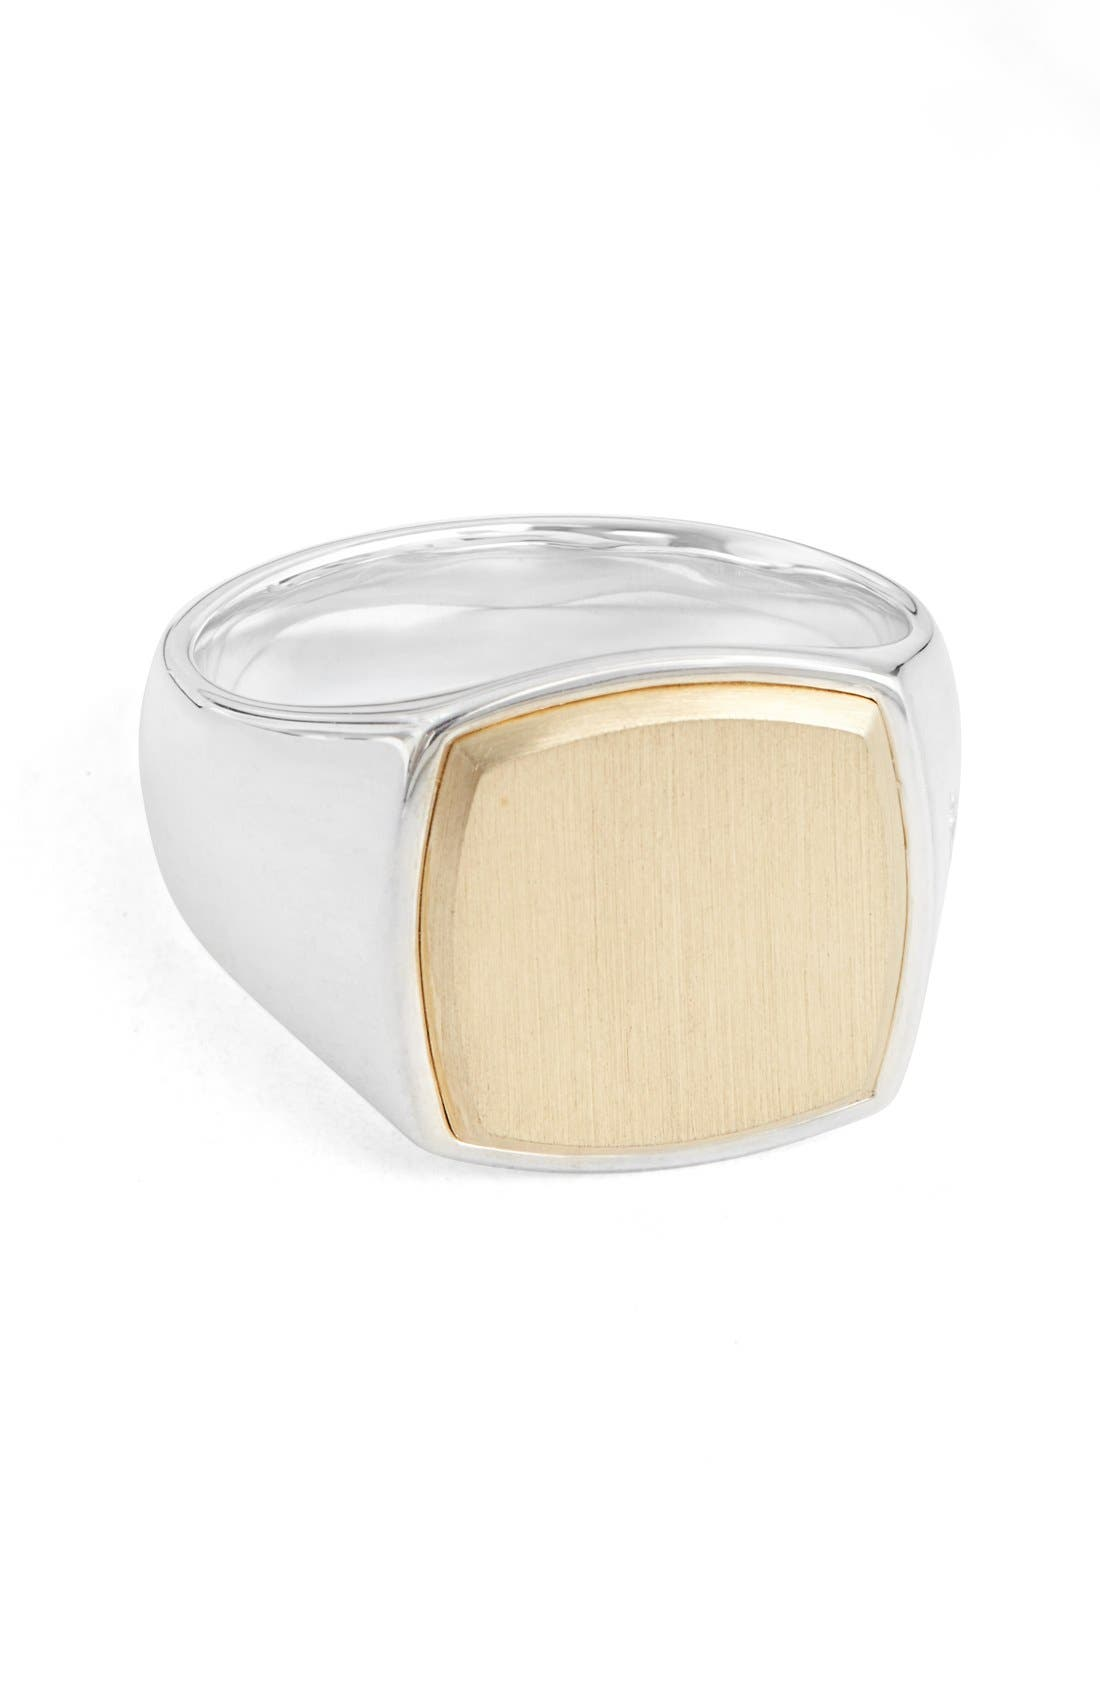 'Patriot Collection' Cushion Gold Top Signet Ring,                             Main thumbnail 1, color,